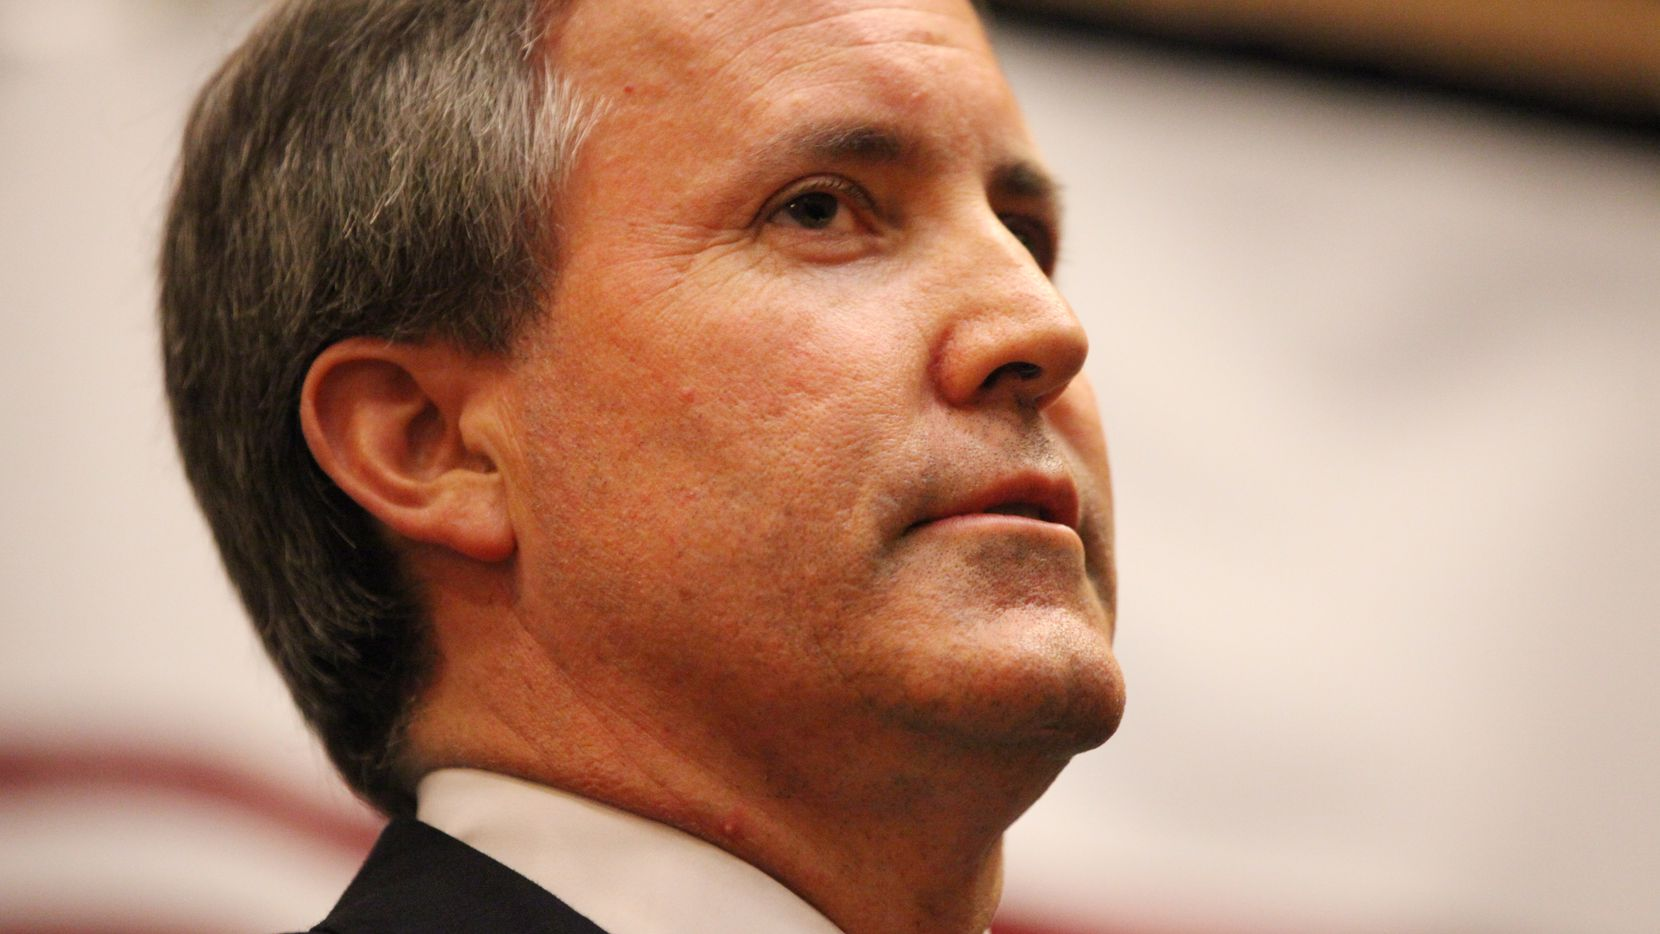 State Senator Ken Paxton announces he won the Republican runoff election for Texas attorney general against Dan Branch at a campaign watch party at the Embassy Suites Hotel and Convention Center in Frisco, Texas on May 27, 2014. (Andy Jacobsohn/The Dallas Morning News)